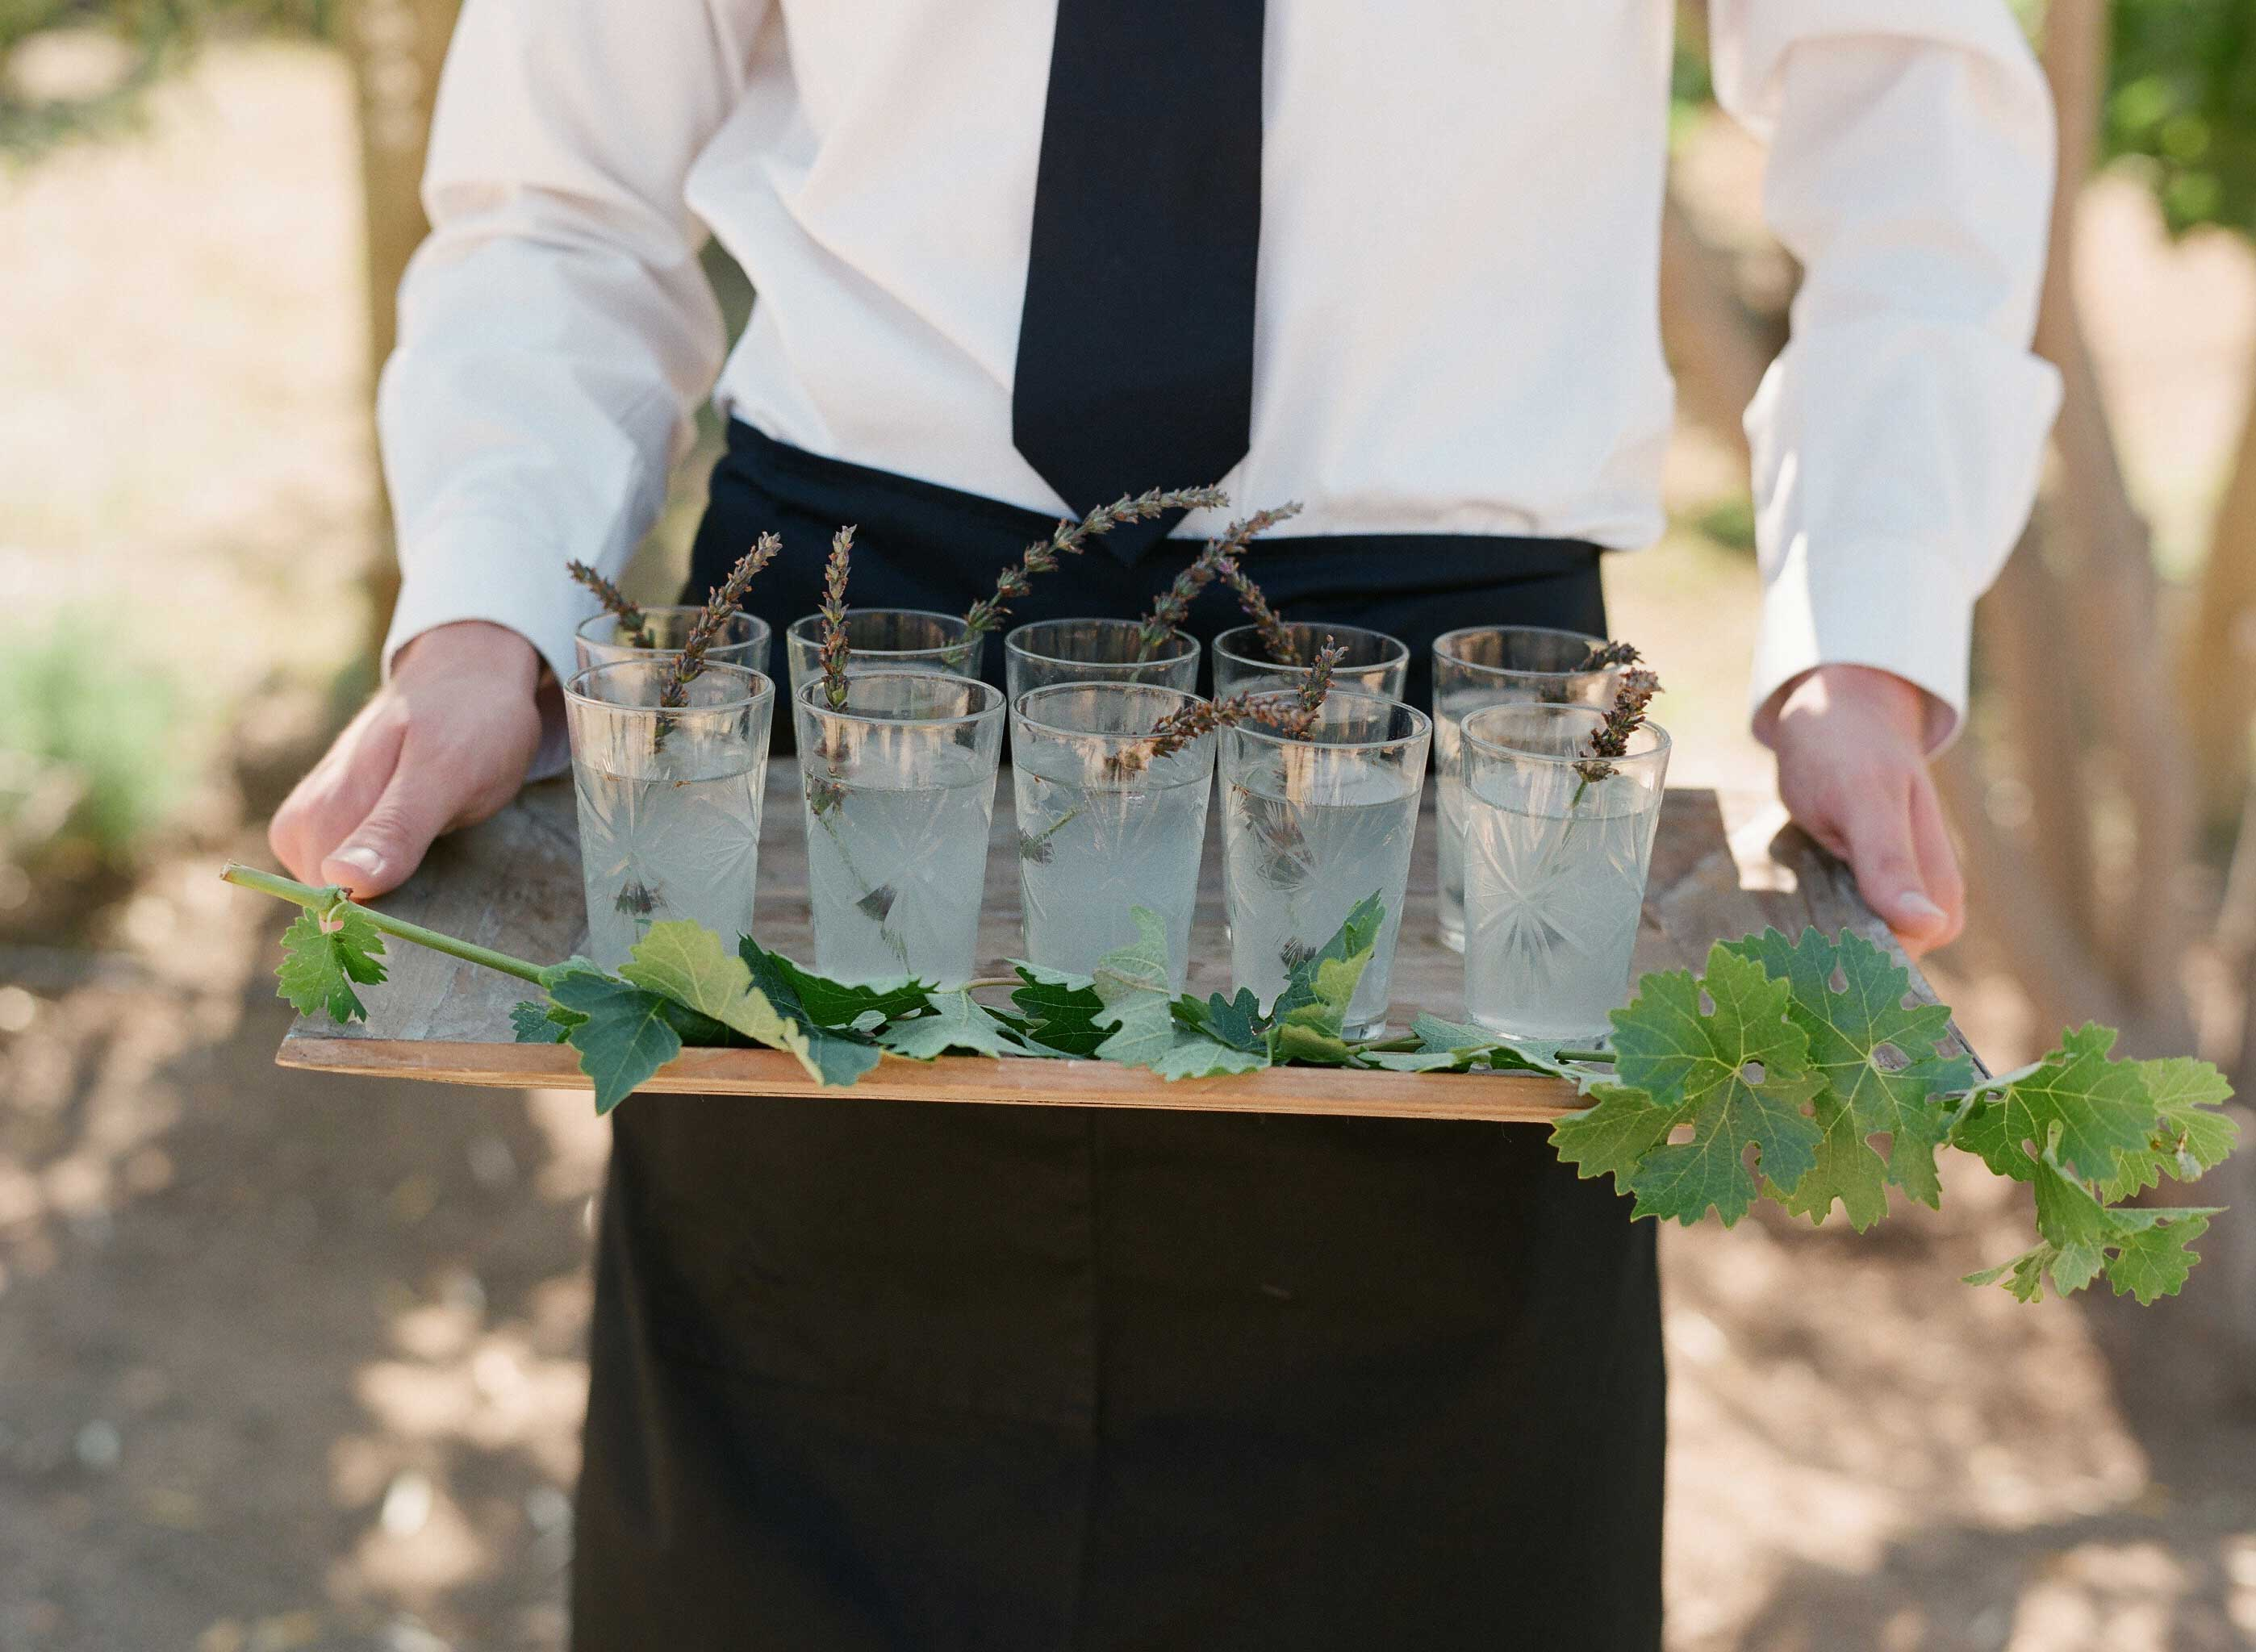 Server carrying wood tray with drinks lavender stirrers garnish